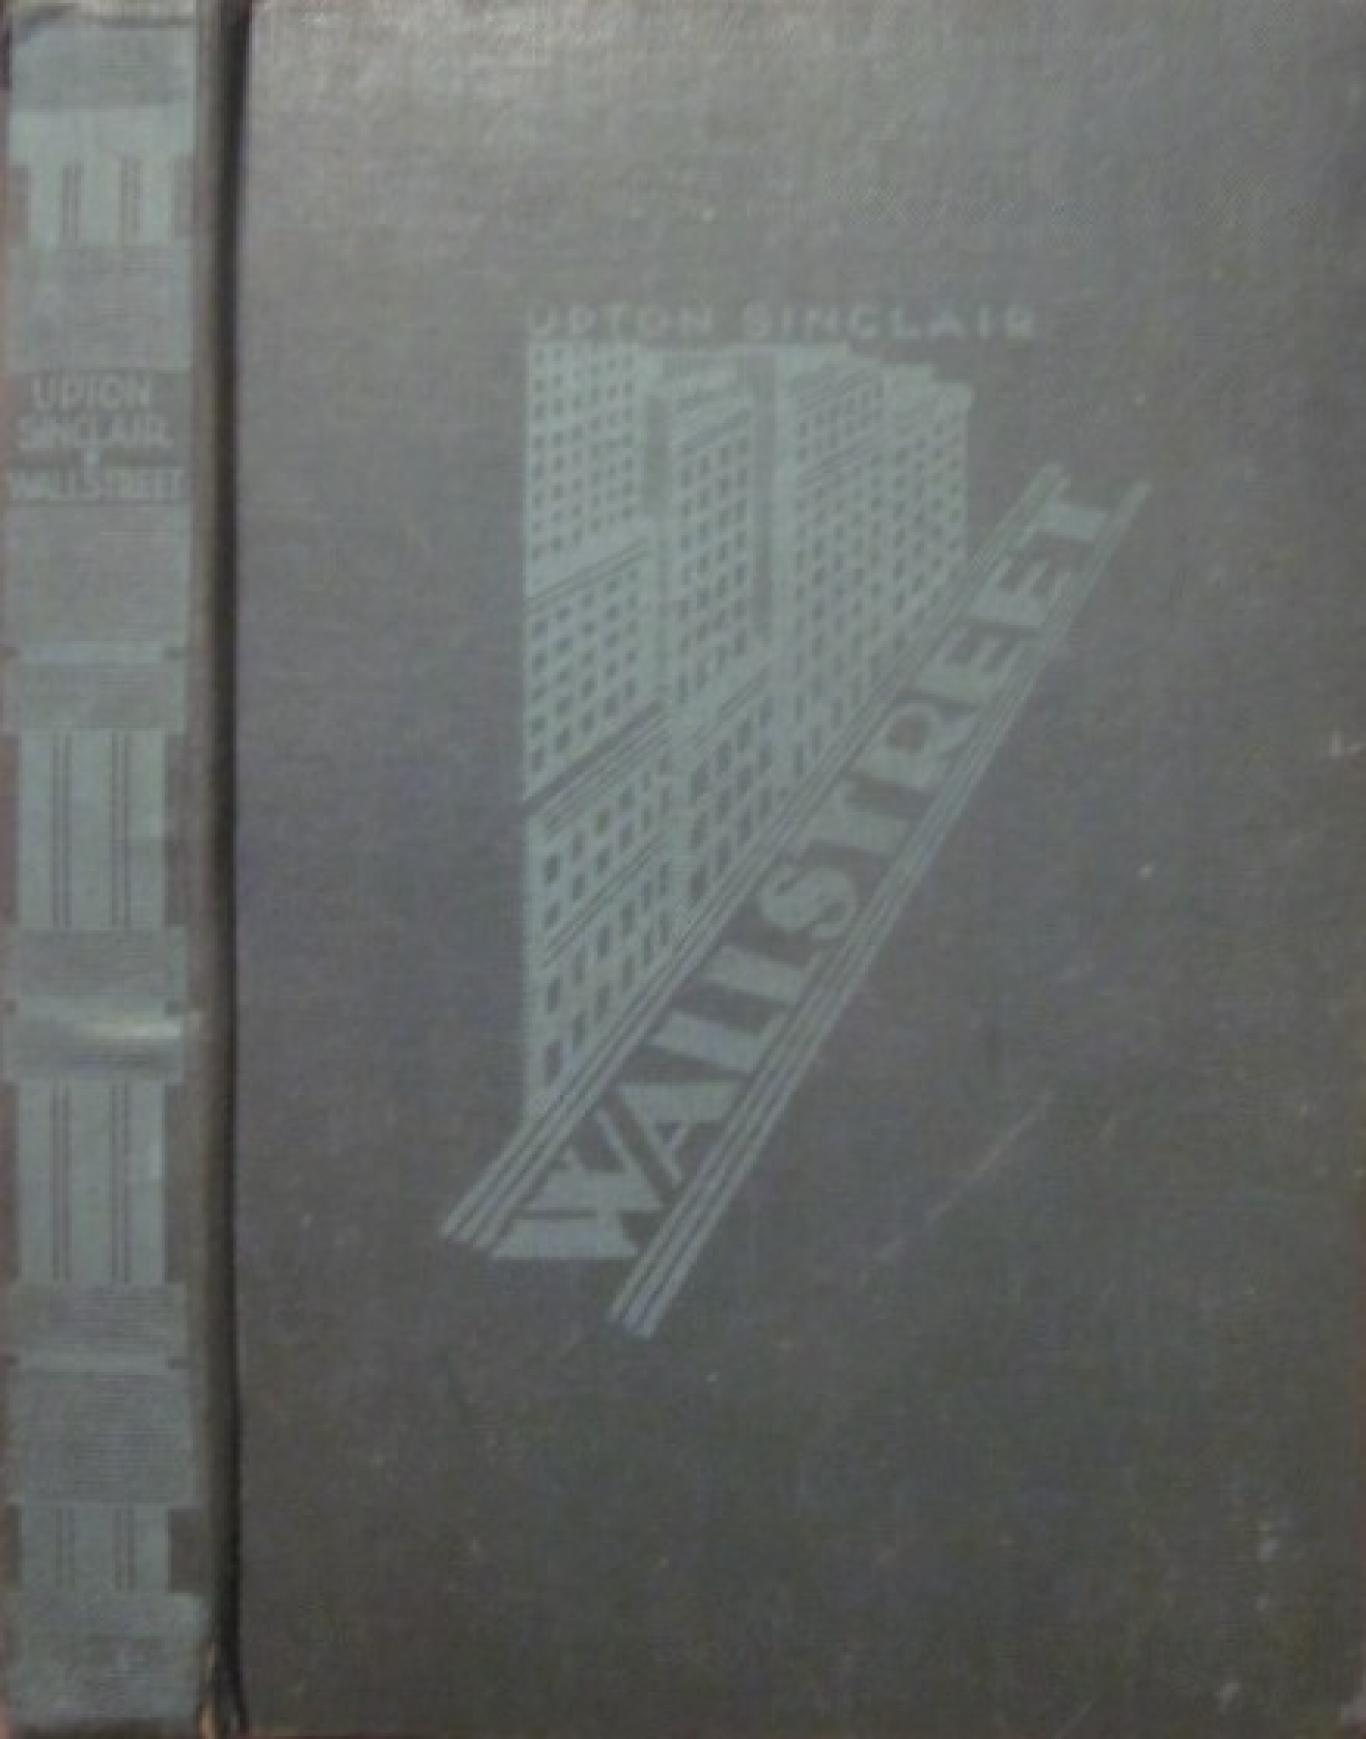 Wallstreet , Upton Sinclair